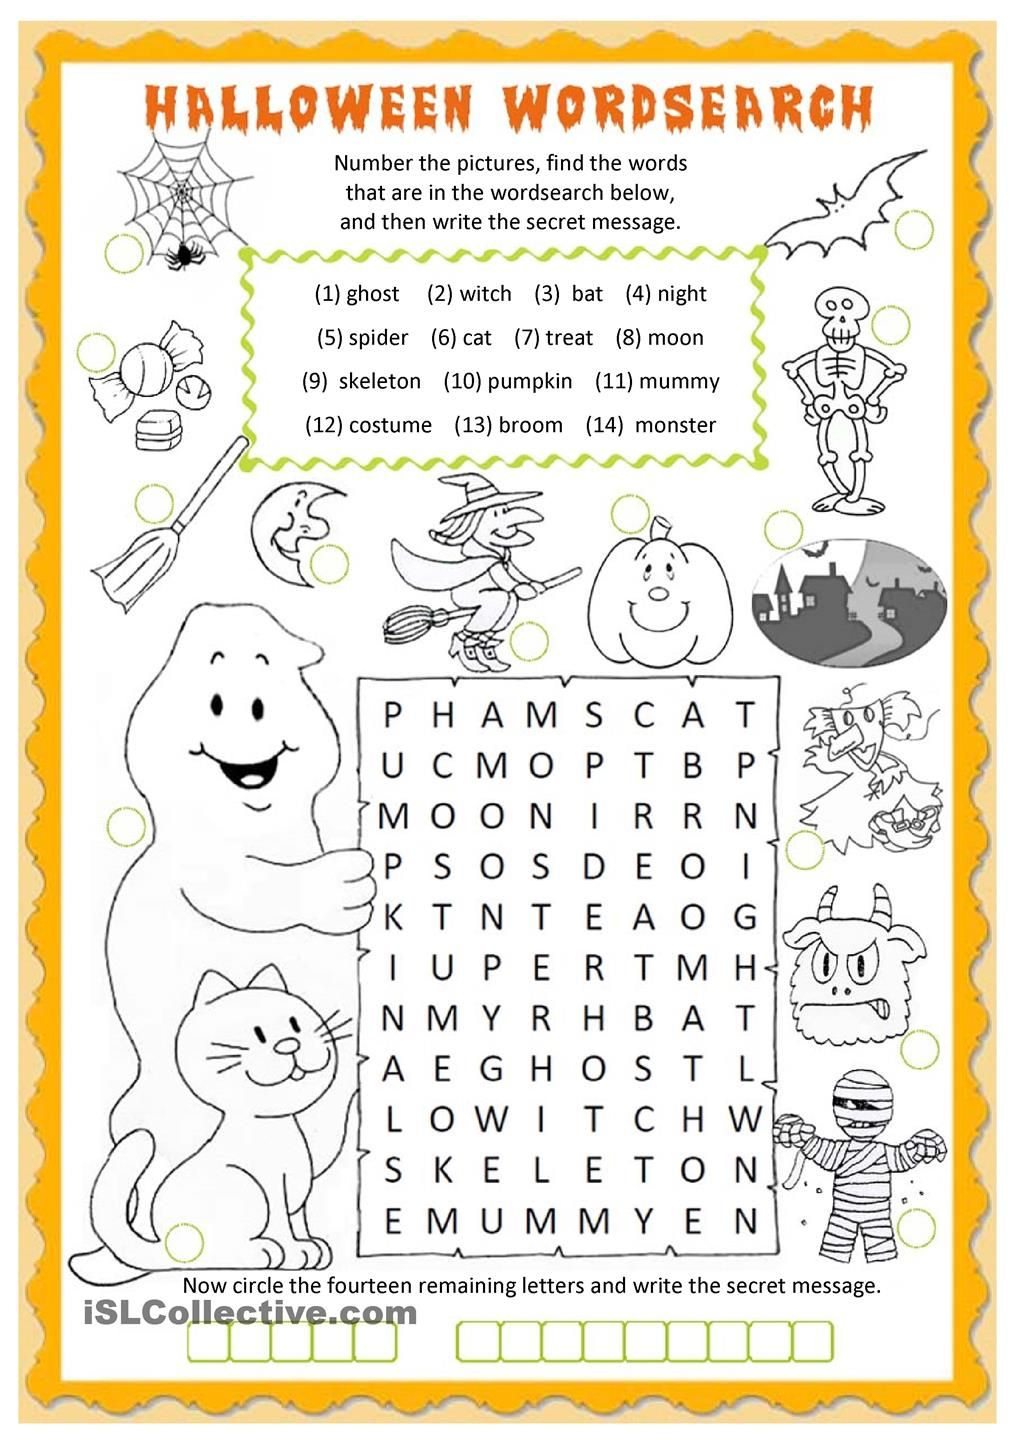 Halloween Wordsearch Worksheet - Free Esl Printable Worksheets Made - Free Printable Bat Writing Paper